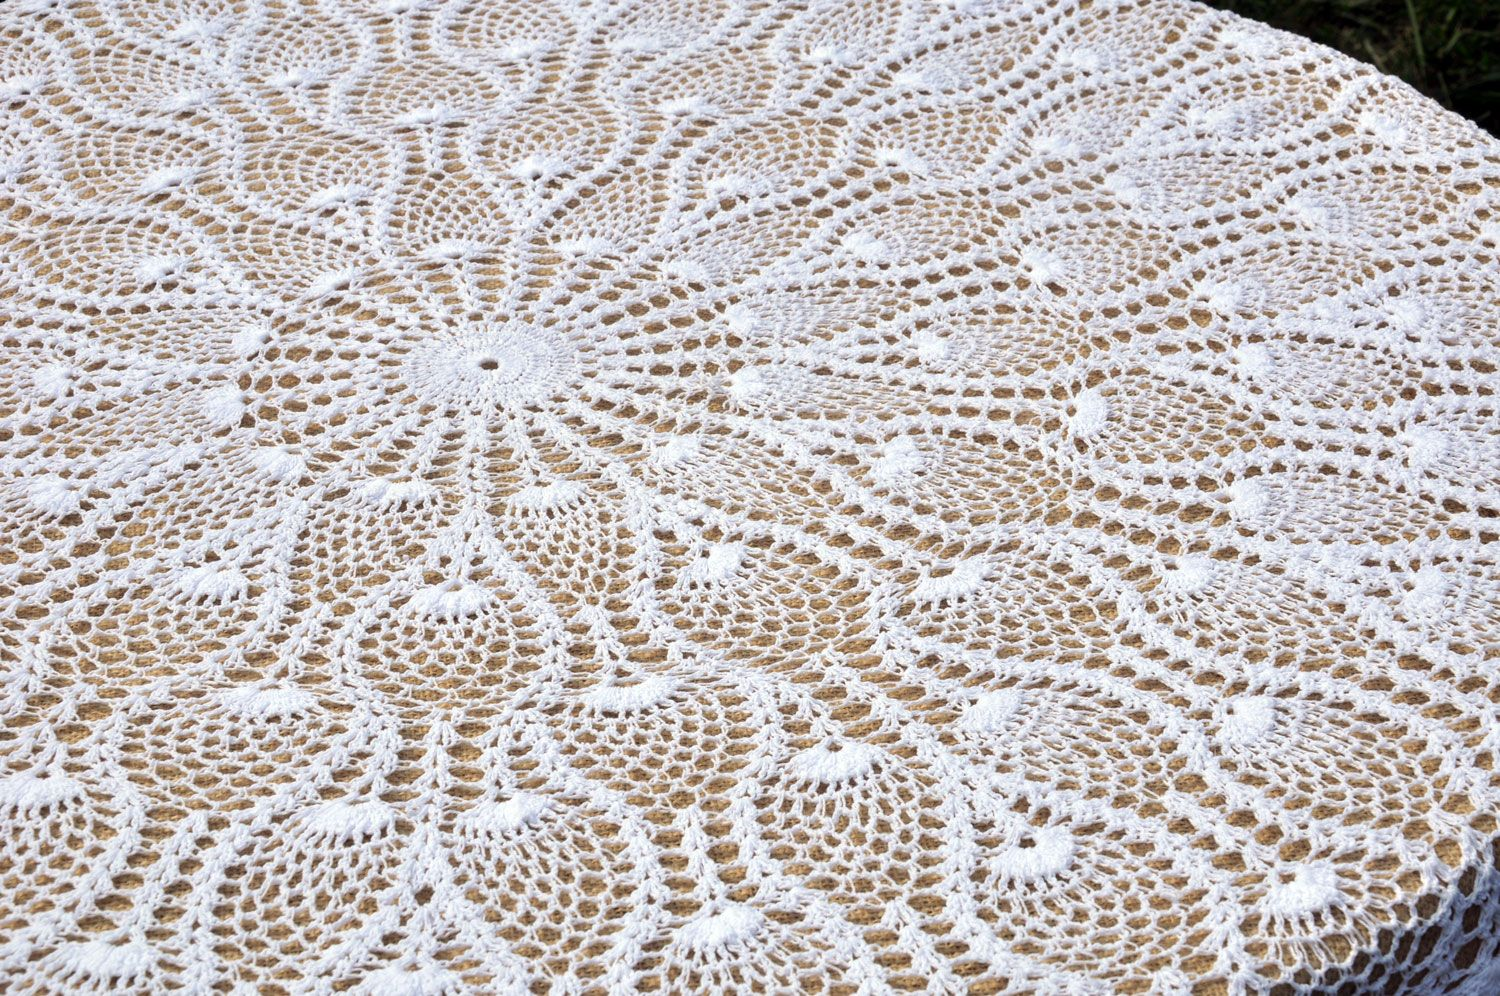 Round Lace Tablecloths 90 Inch Round Lace Crochet Tablecloth